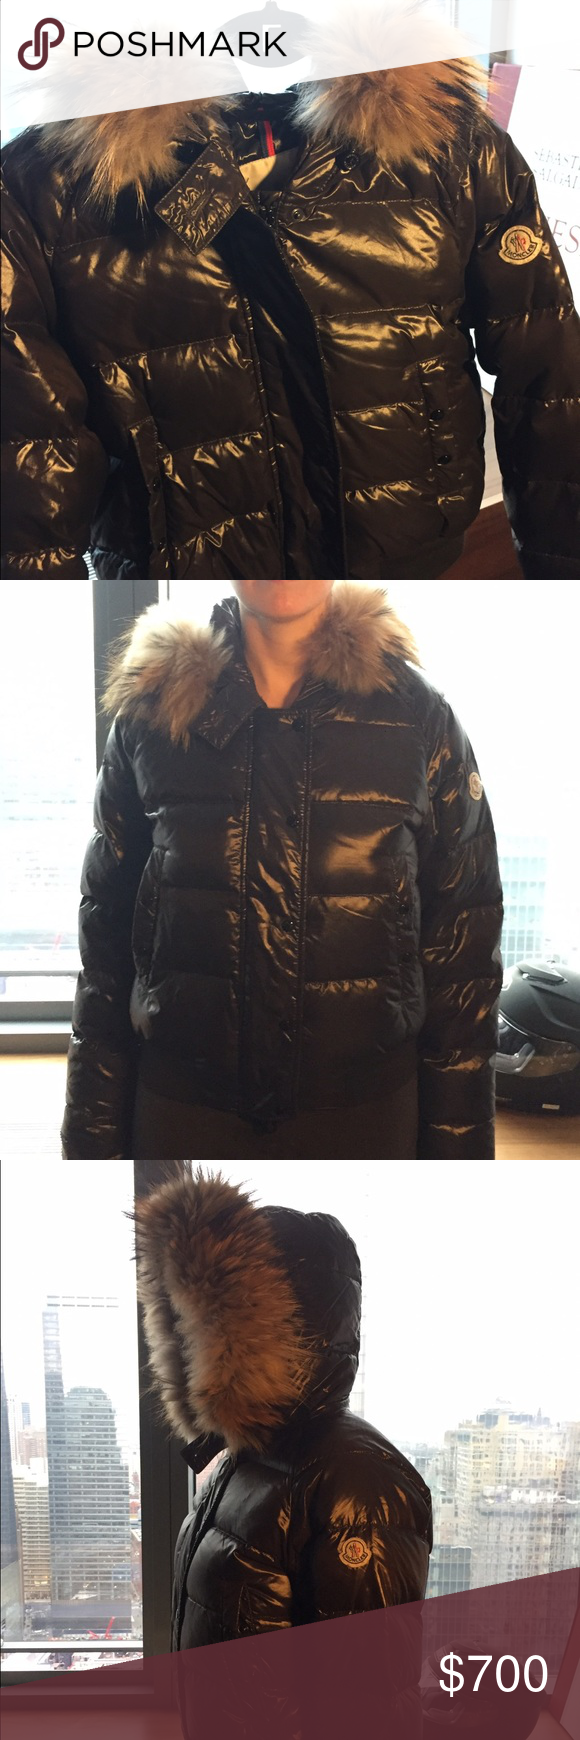 Moncler down jacket with real fur hood Impeccable Moncler ...